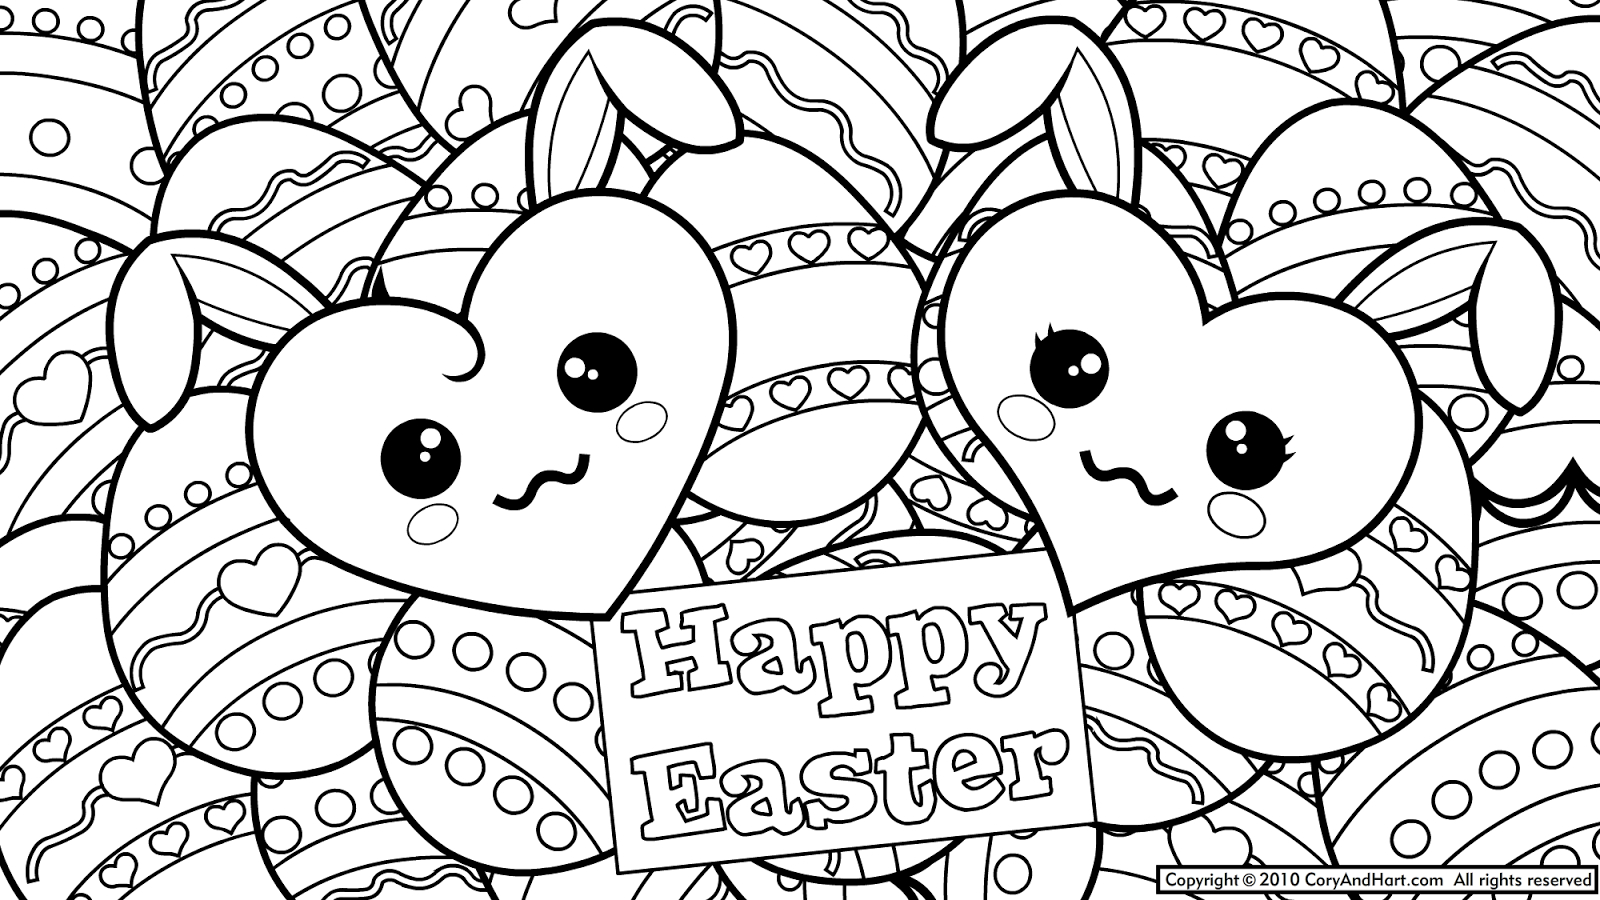 Mosaic Coloring Pages to Print Collection Of Easter Basket Coloring Pages to Print Gallery